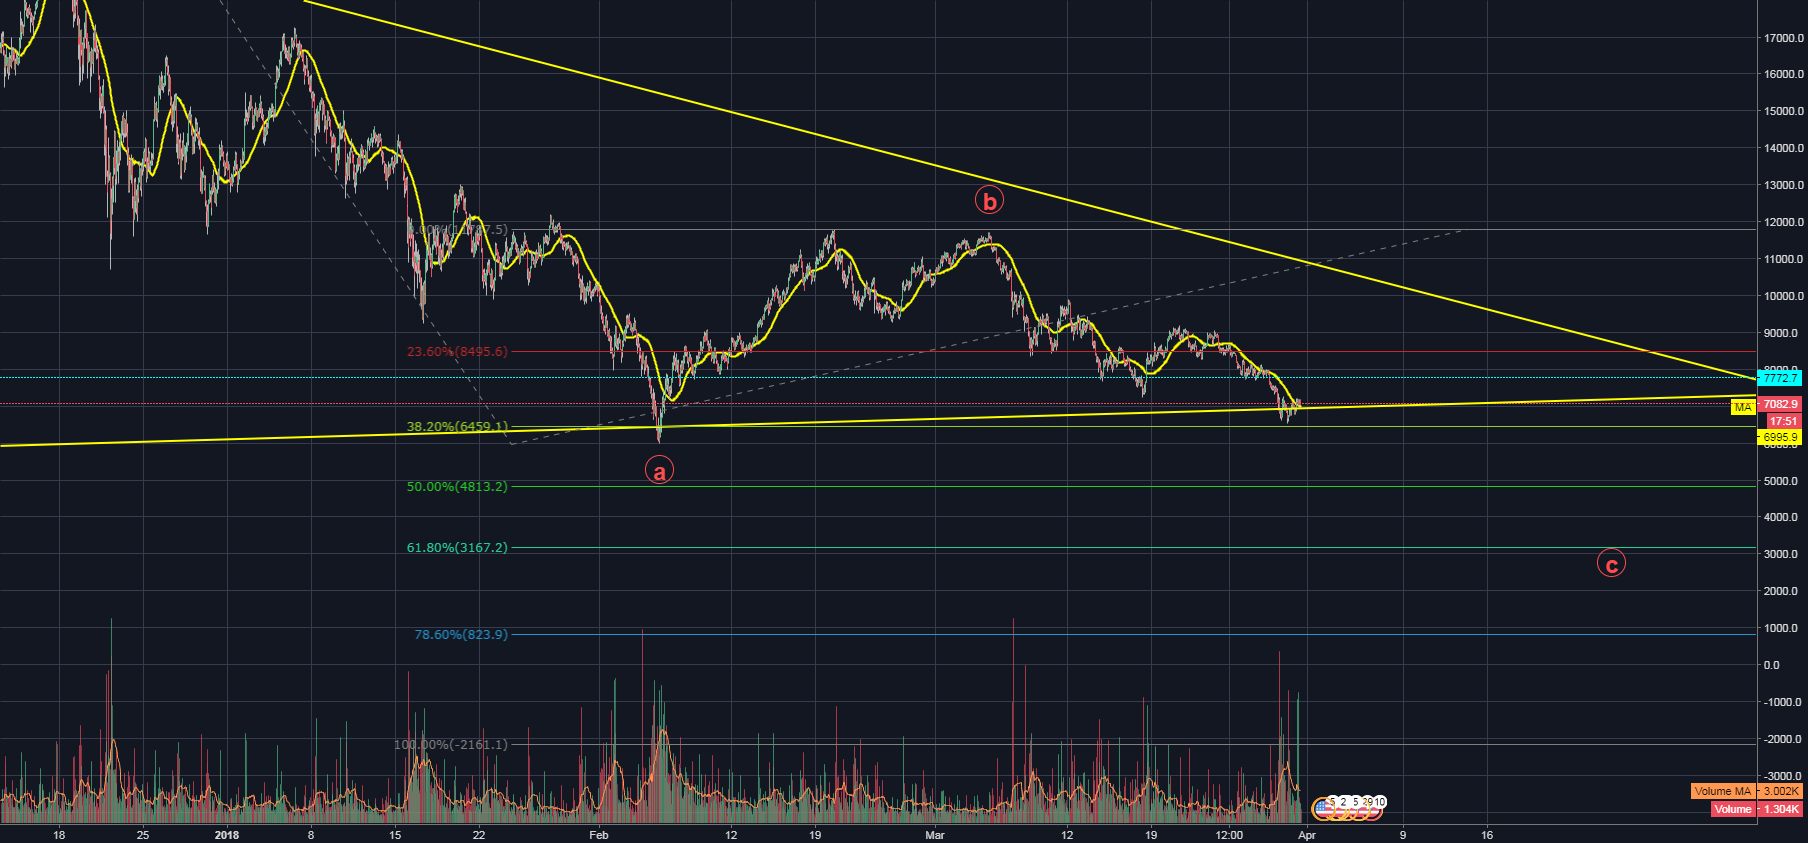 MARCH 31st BITCOIN OVERVIEW / JUST STARTED C WAVE